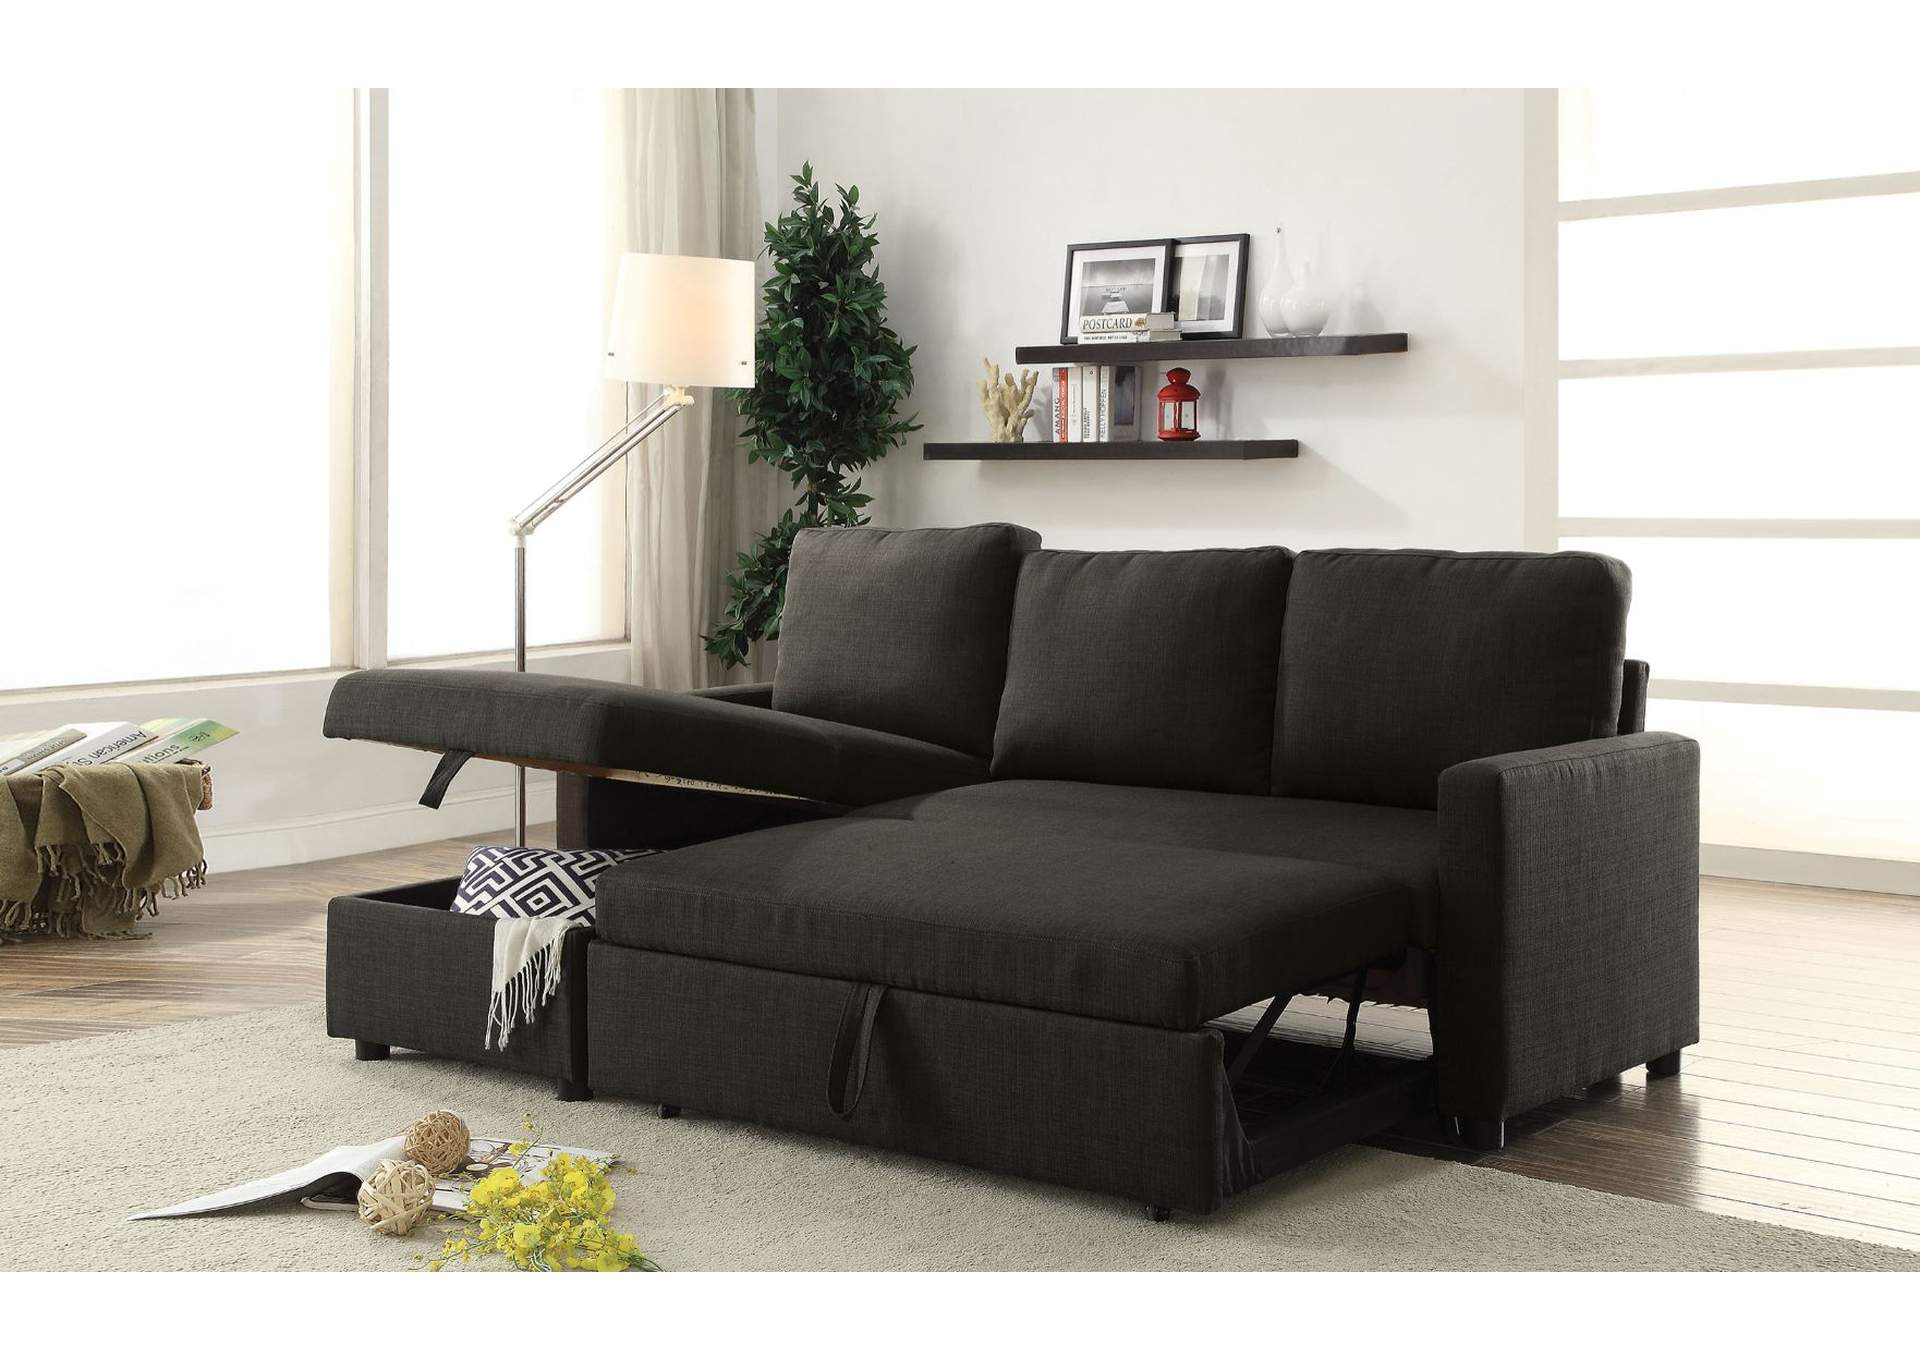 Hiltons Charcoal Linen Sectional Sofa,Acme